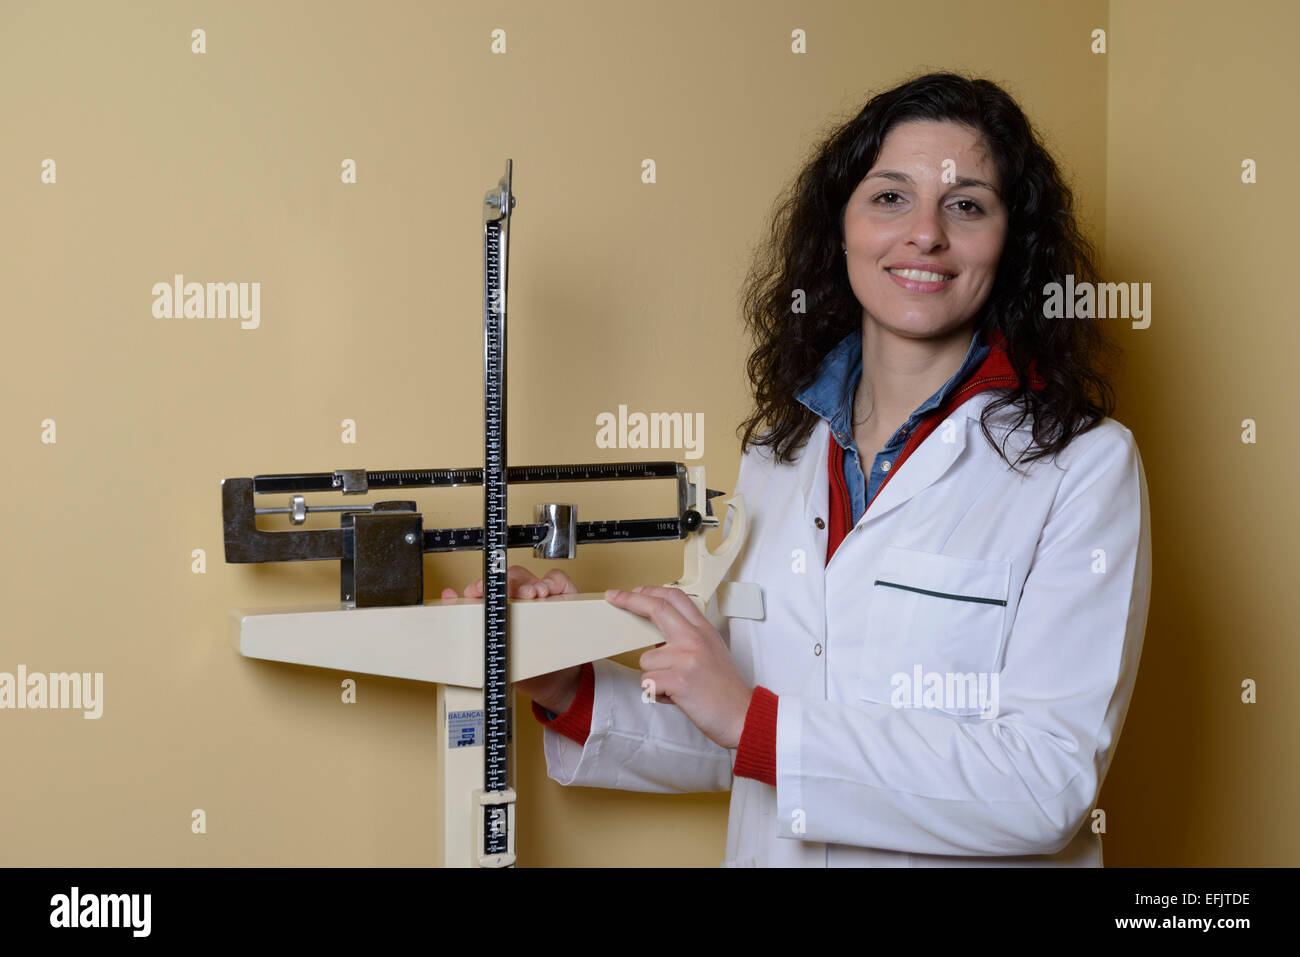 Portrait of a nutritionist next to weighing scales - Stock Image